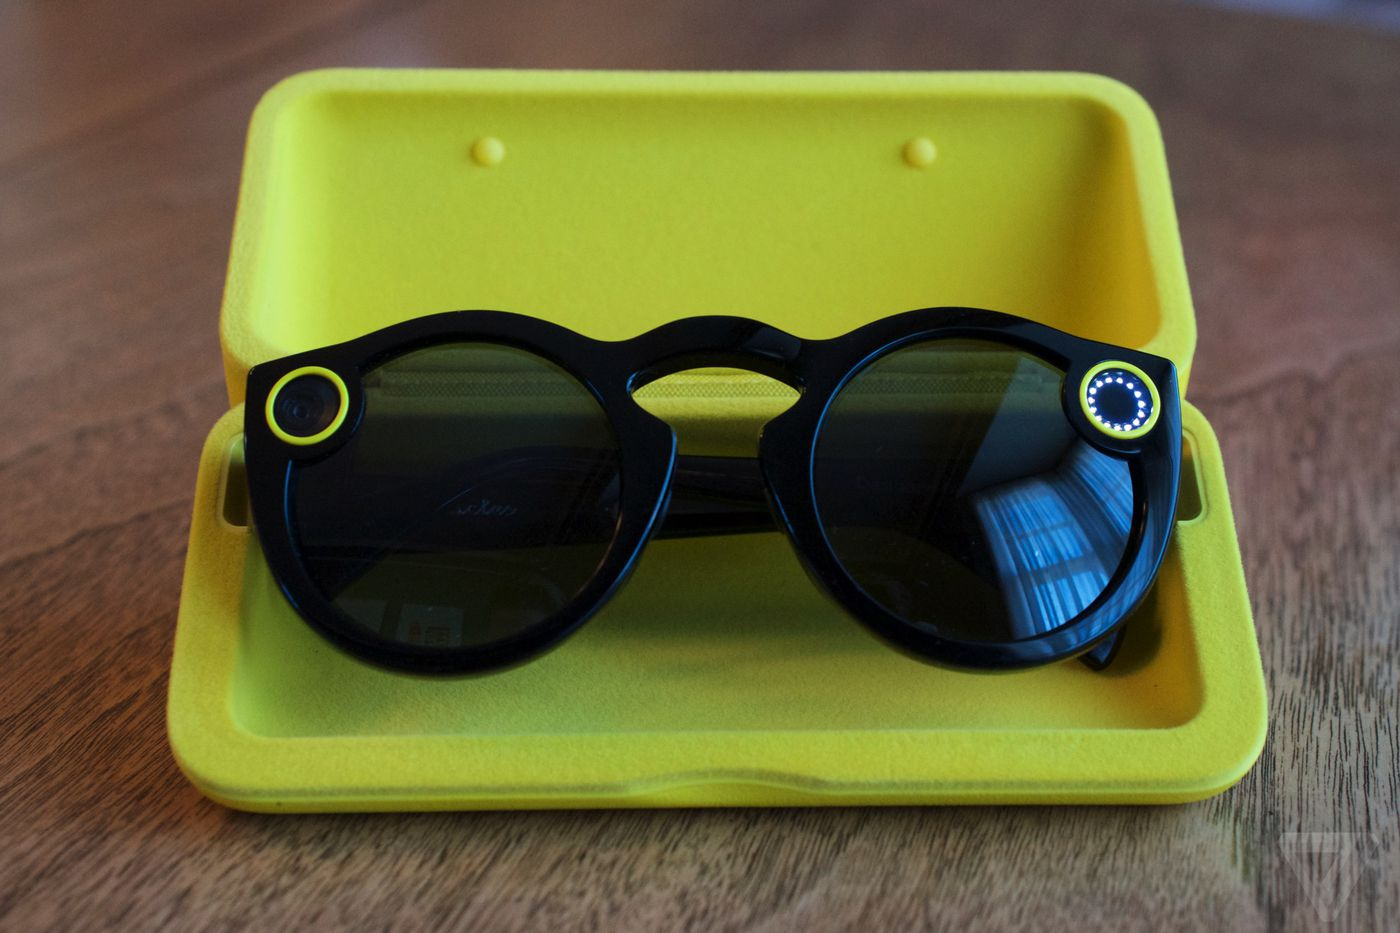 a70957e4ea85 Snapchat Spectacles are now available in Europe - The Verge